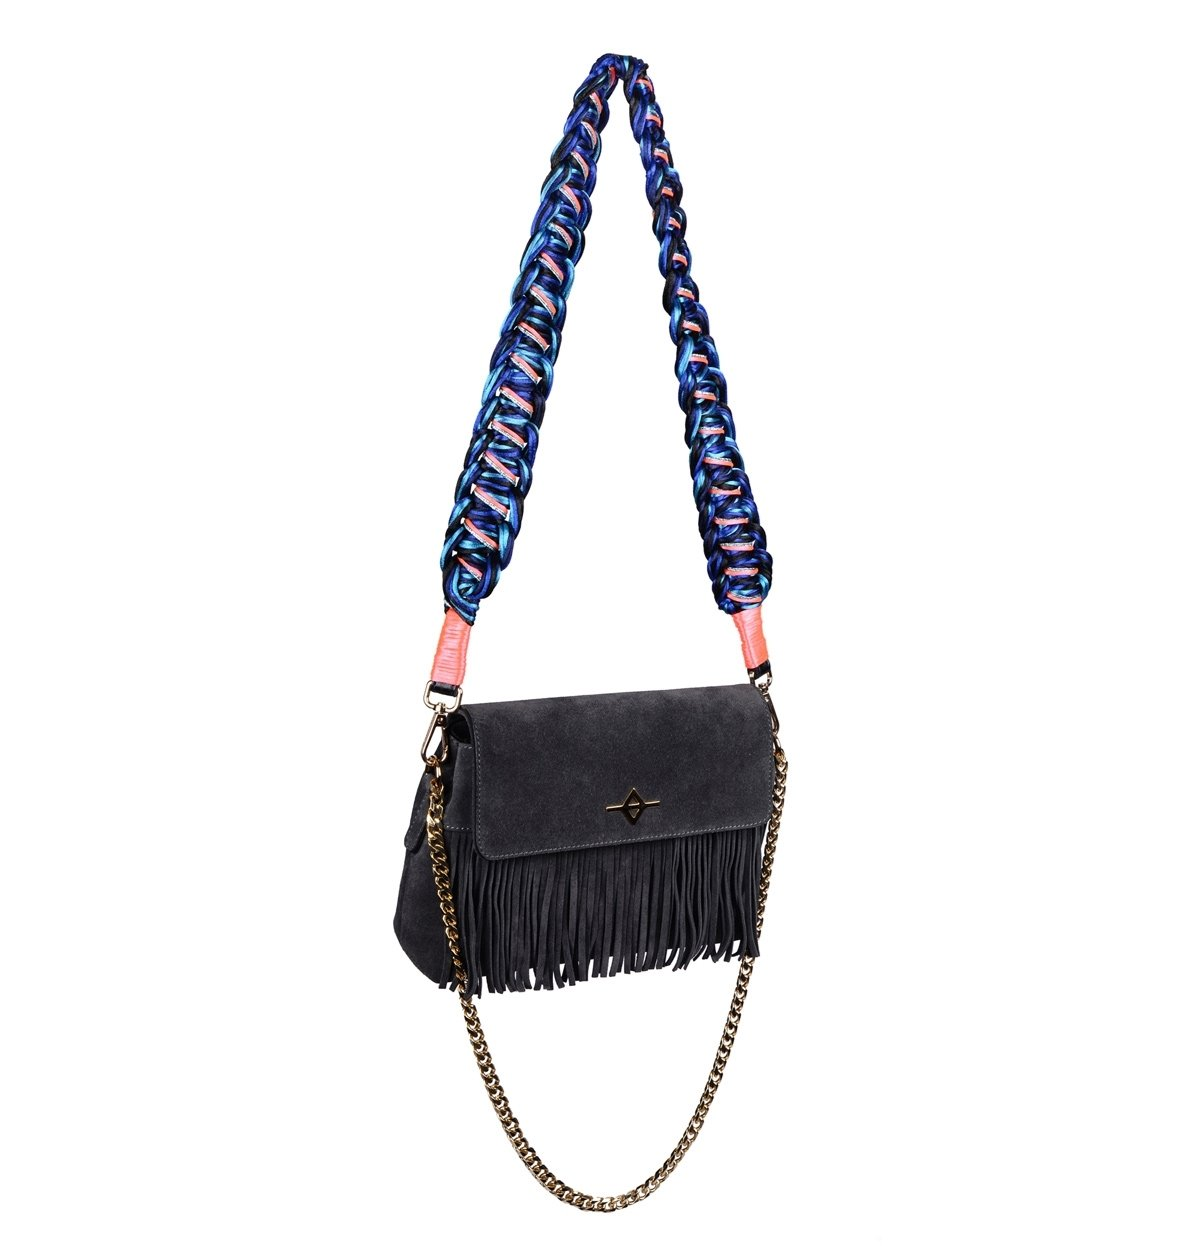 navy blue suede shoulder bag, dark blue light blue pink colors, handmade Happynes Bag Strap | Cadence - hippist.co.uk